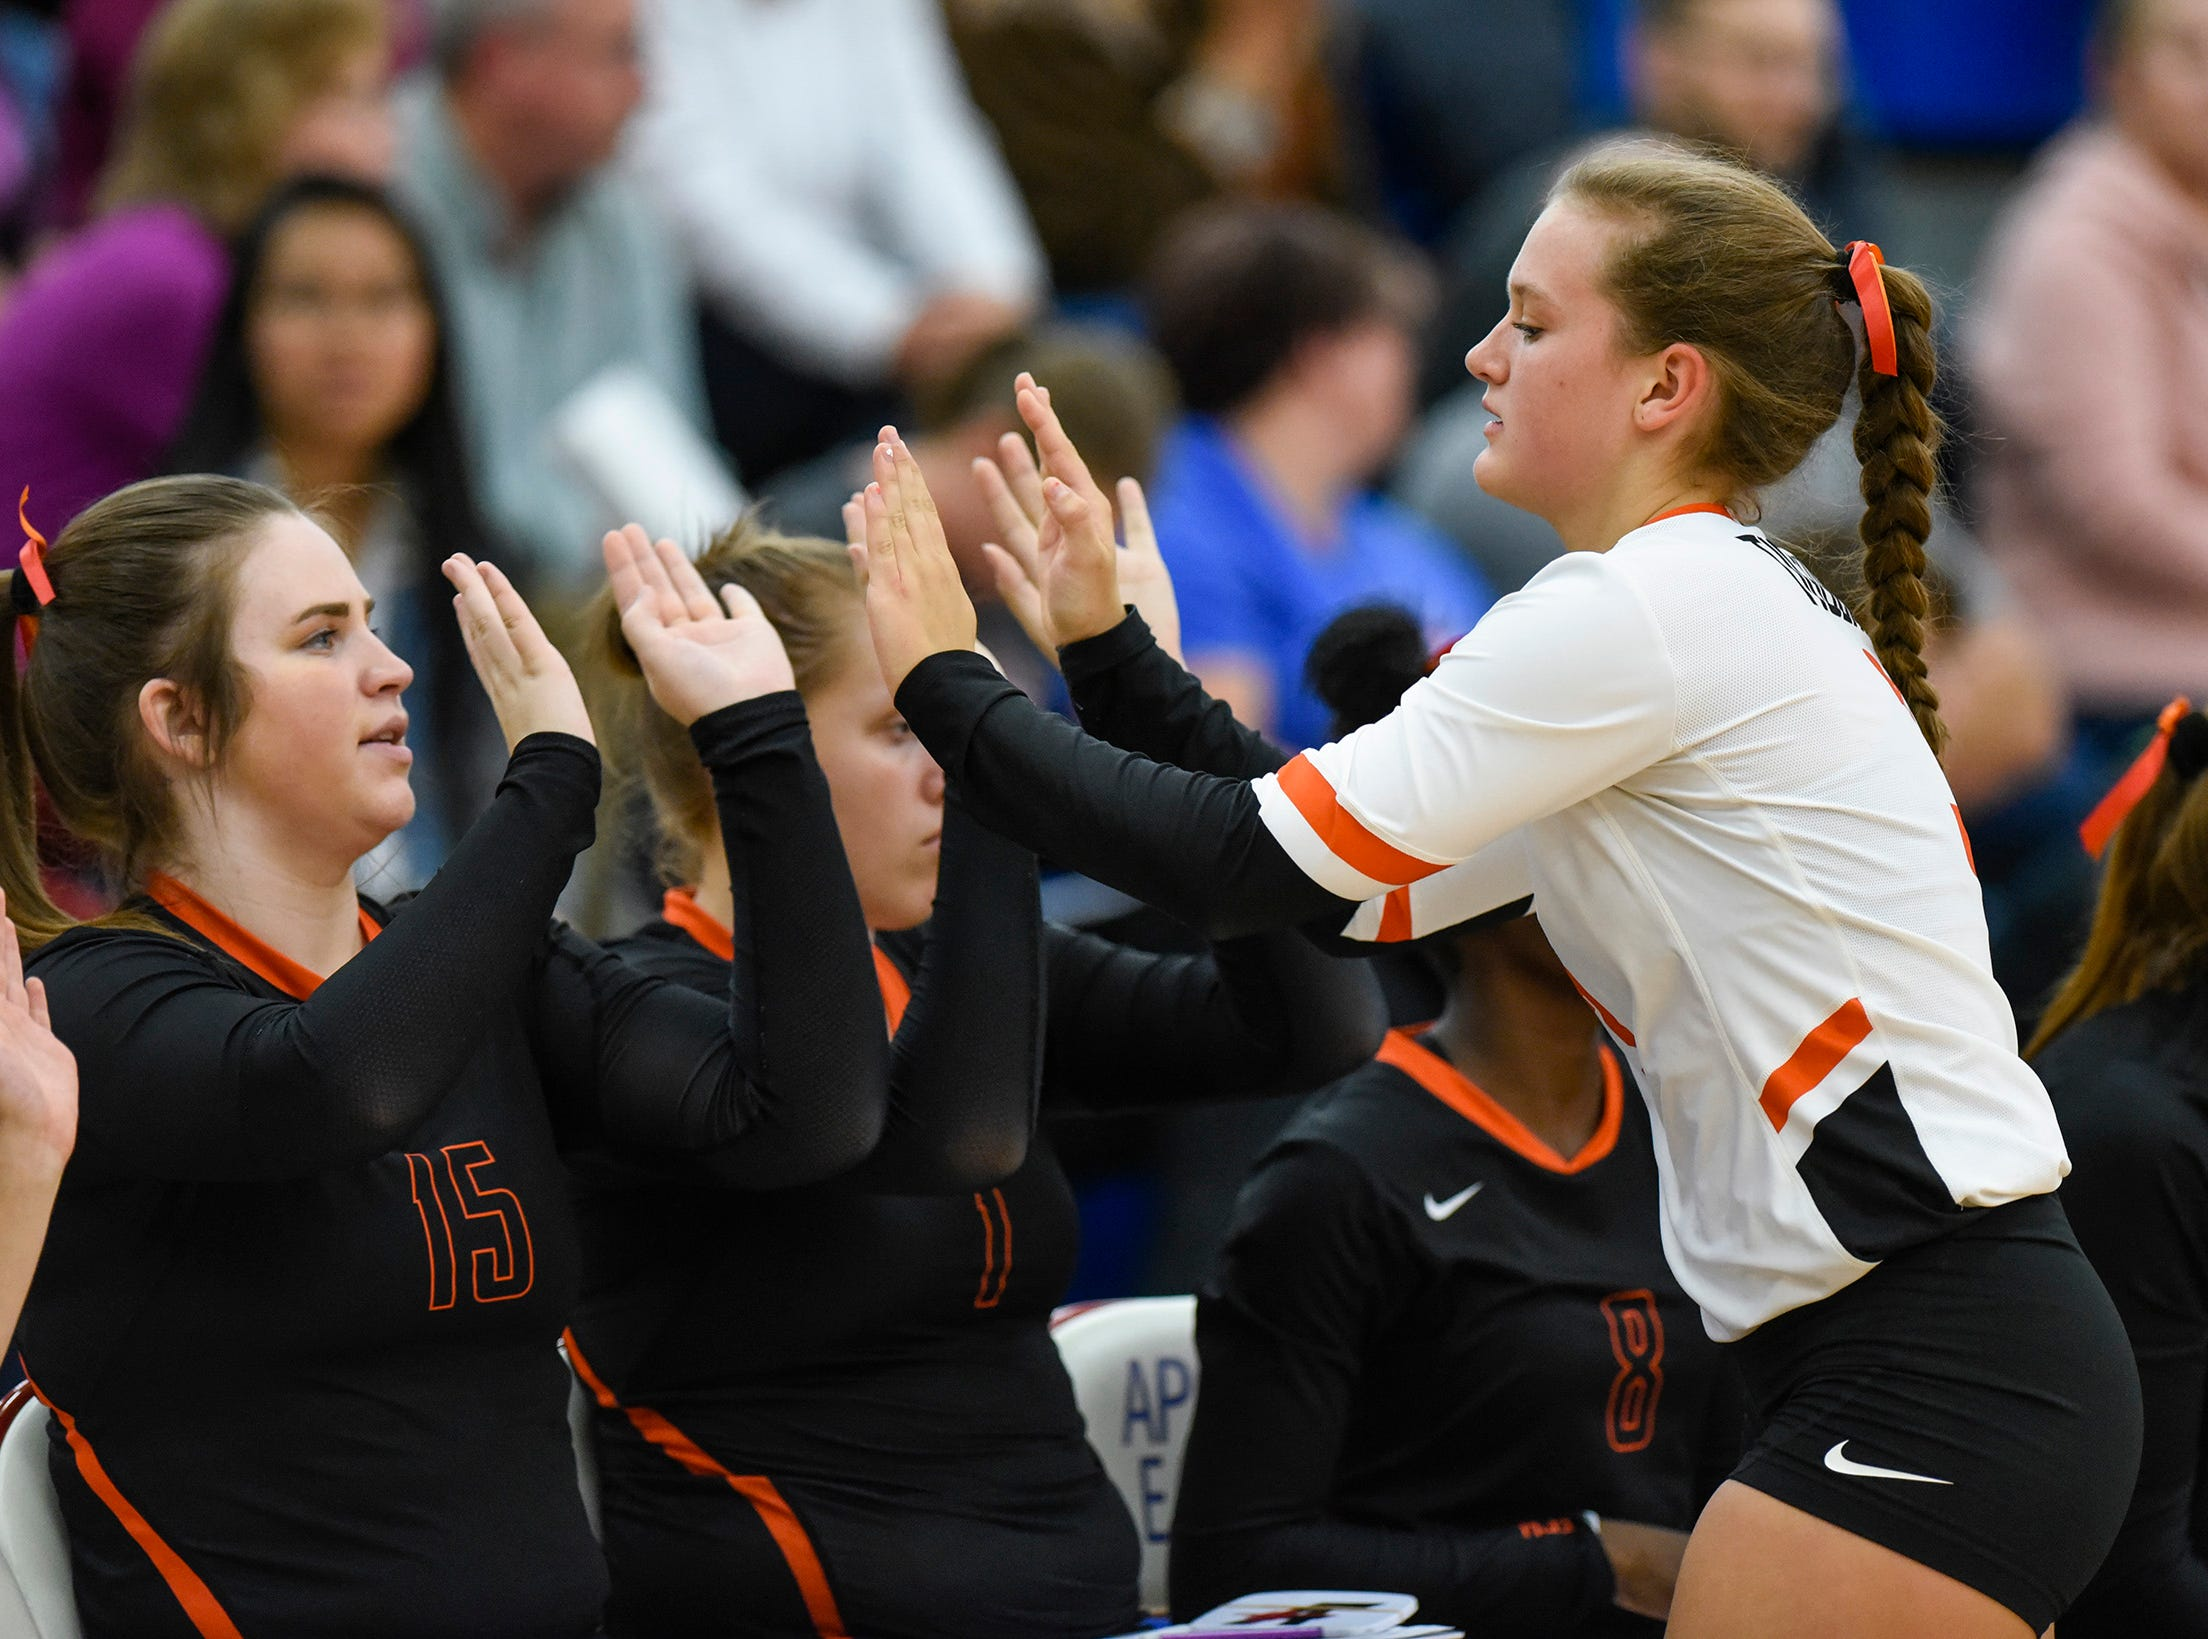 Tech's Rachel Matz is met by teammates as she comes off the court against Apollo during the second game Tuesday, Oct. 2, at Apollo High School.